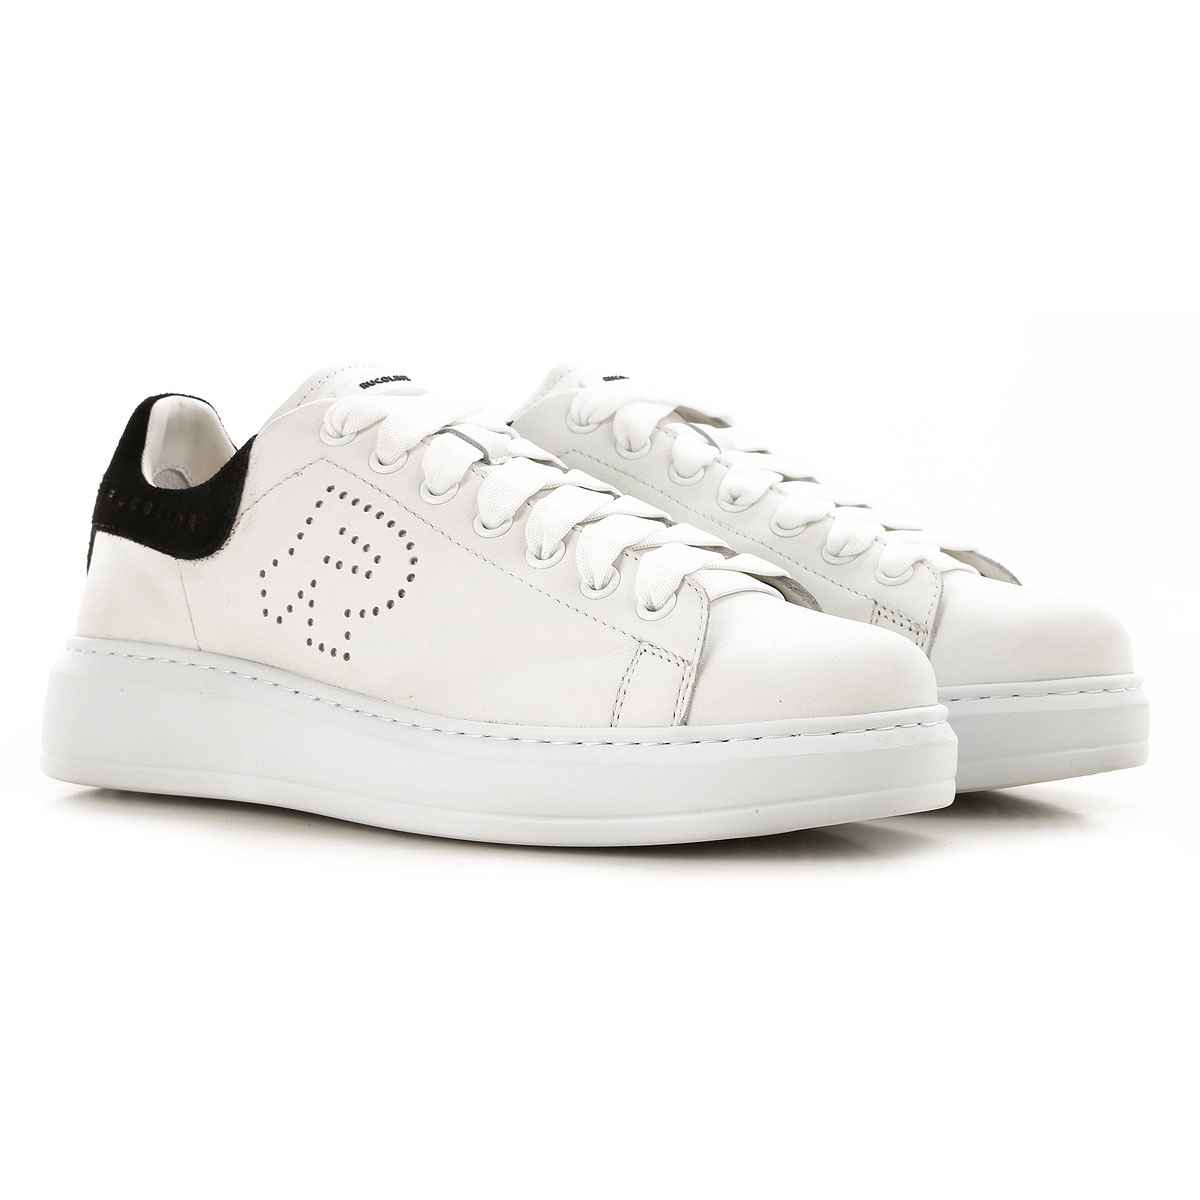 Ruco Line Sneakers for Women On Sale in Outlet White - GOOFASH